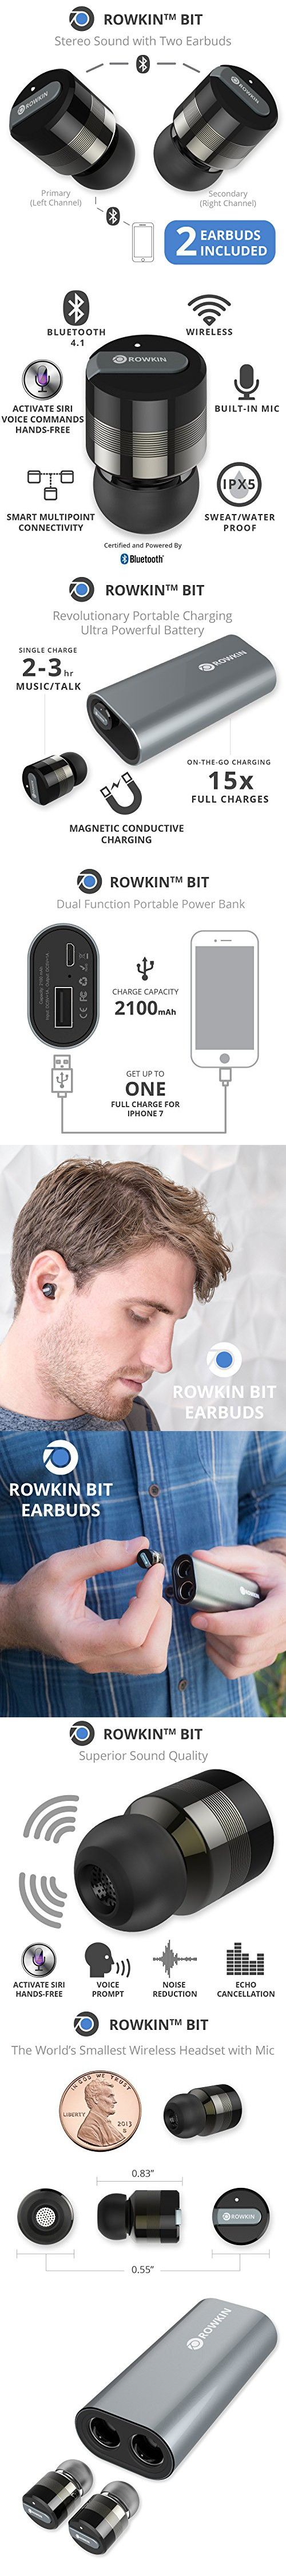 Rowkin Bit Charge: Stereo Wireless Headphones with Portable Charger. Bluetooth Earbuds, Smallest Cordless Hands-free Mini Earphones Headset w/ Mic & Noise Reduction for Running and iPhone (Space Gray)